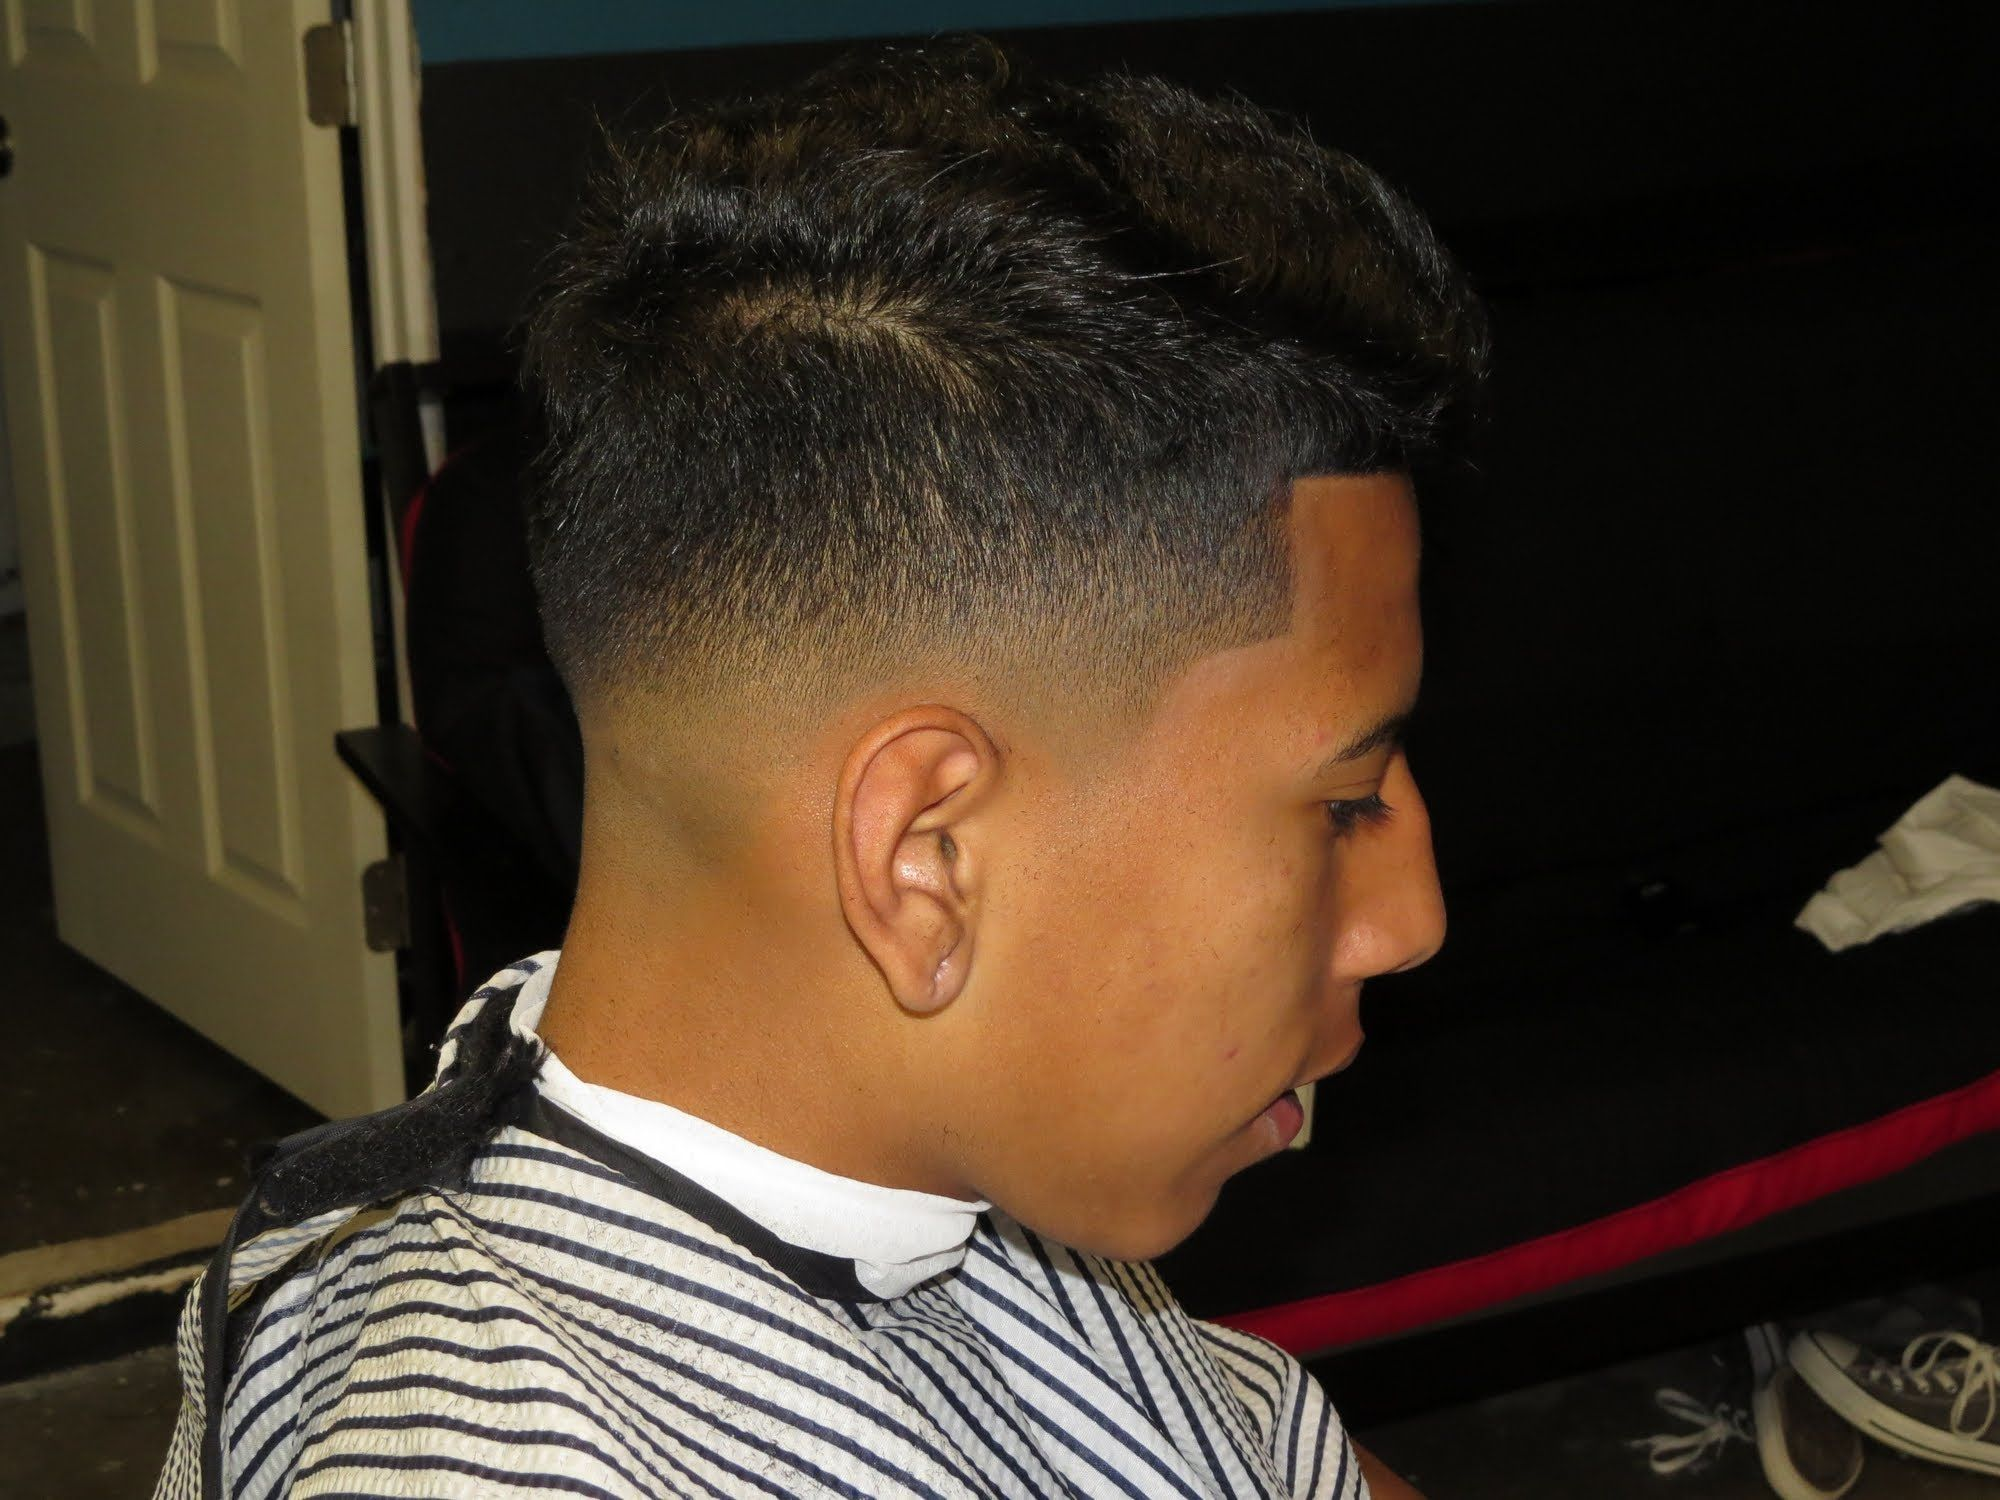 Cool Temp Fade Haircut Styles For Men Men S Hairstyles Club Temp Fade Haircut Fade Haircut Haircut Pictures